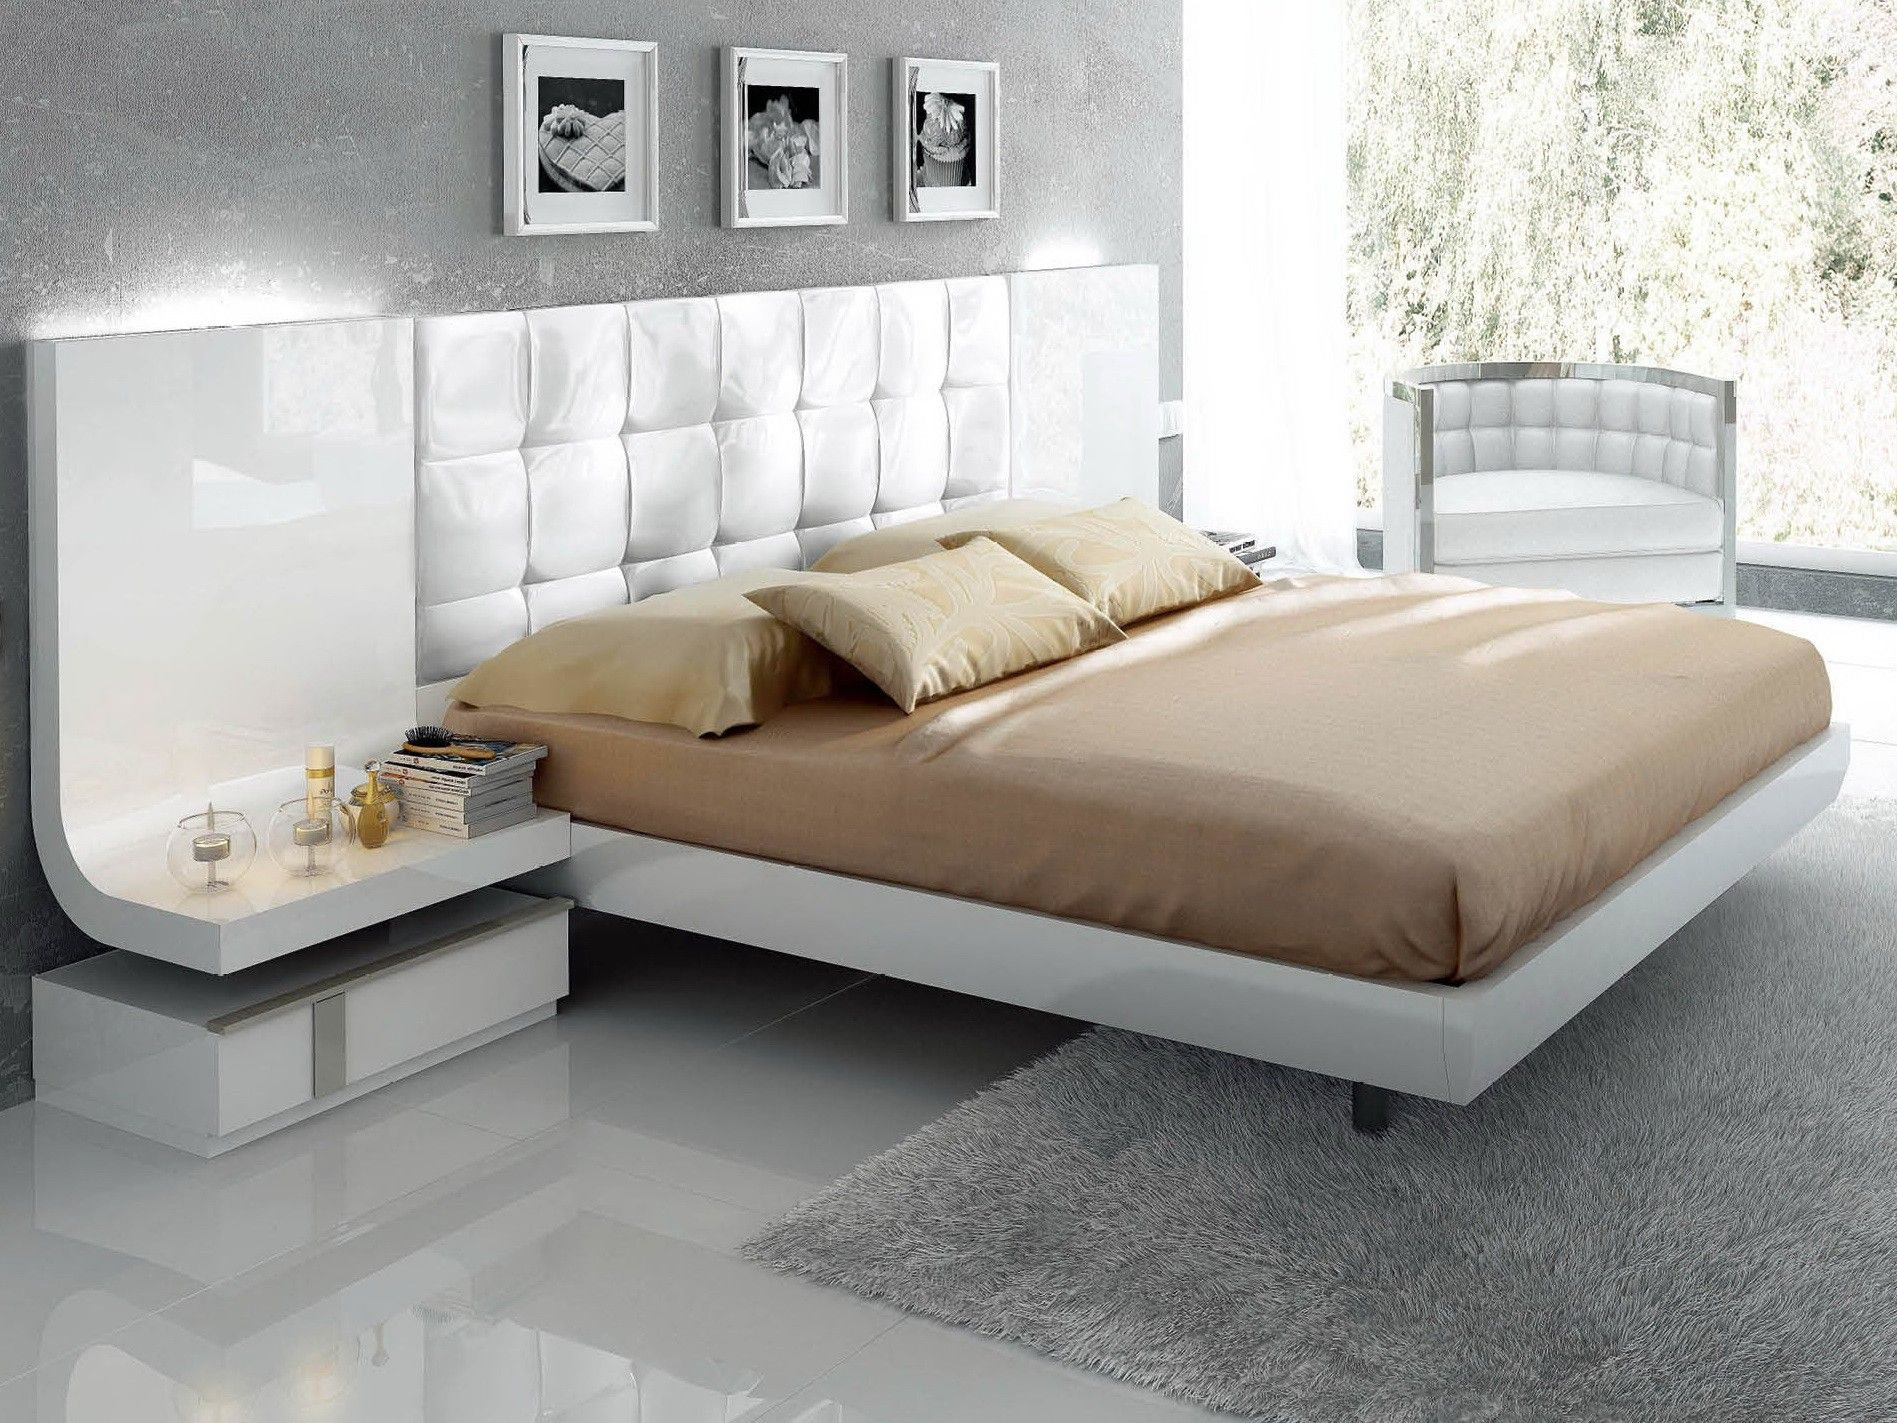 Fenicia Granada Bed  The Bed Is An Elegant Beauty